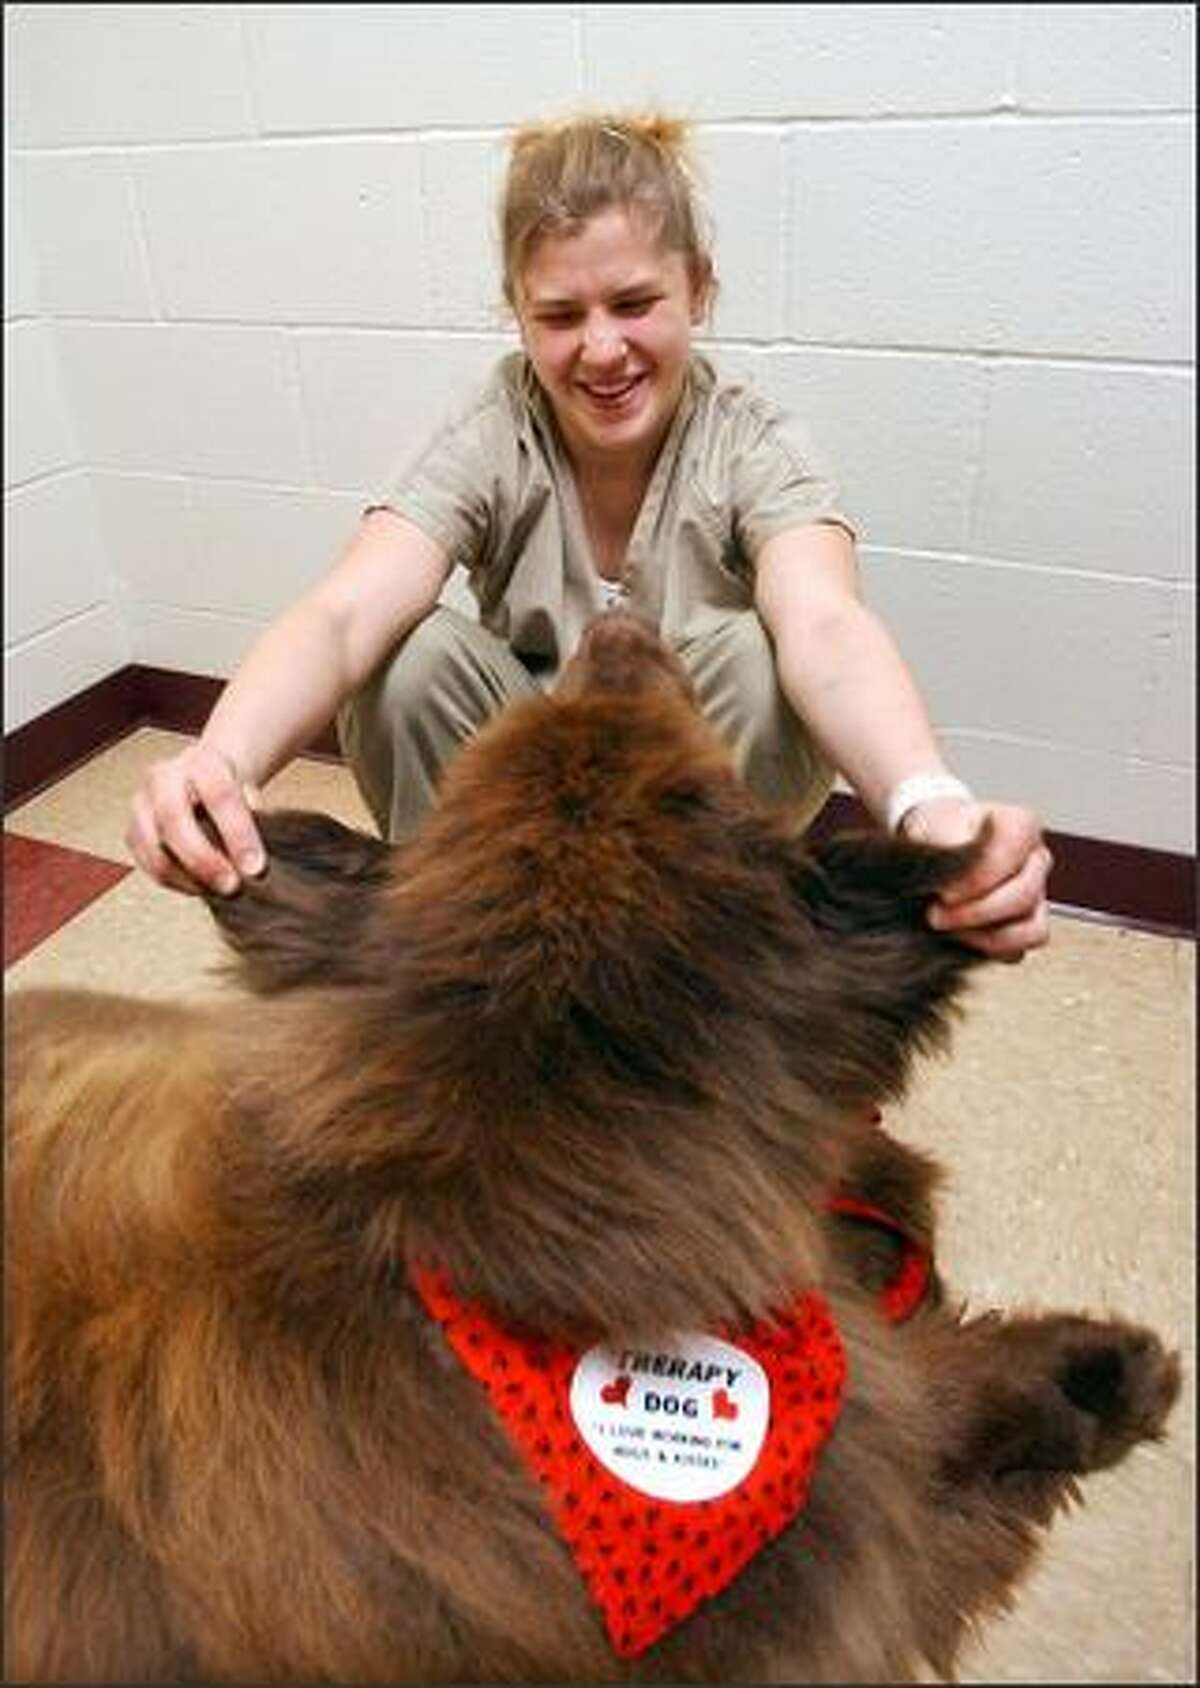 Gentle Ben, a Newfoundland, brings a smile to a 17-year-old inmate named Alex at the Clark County Juvenile Justice Center last week.